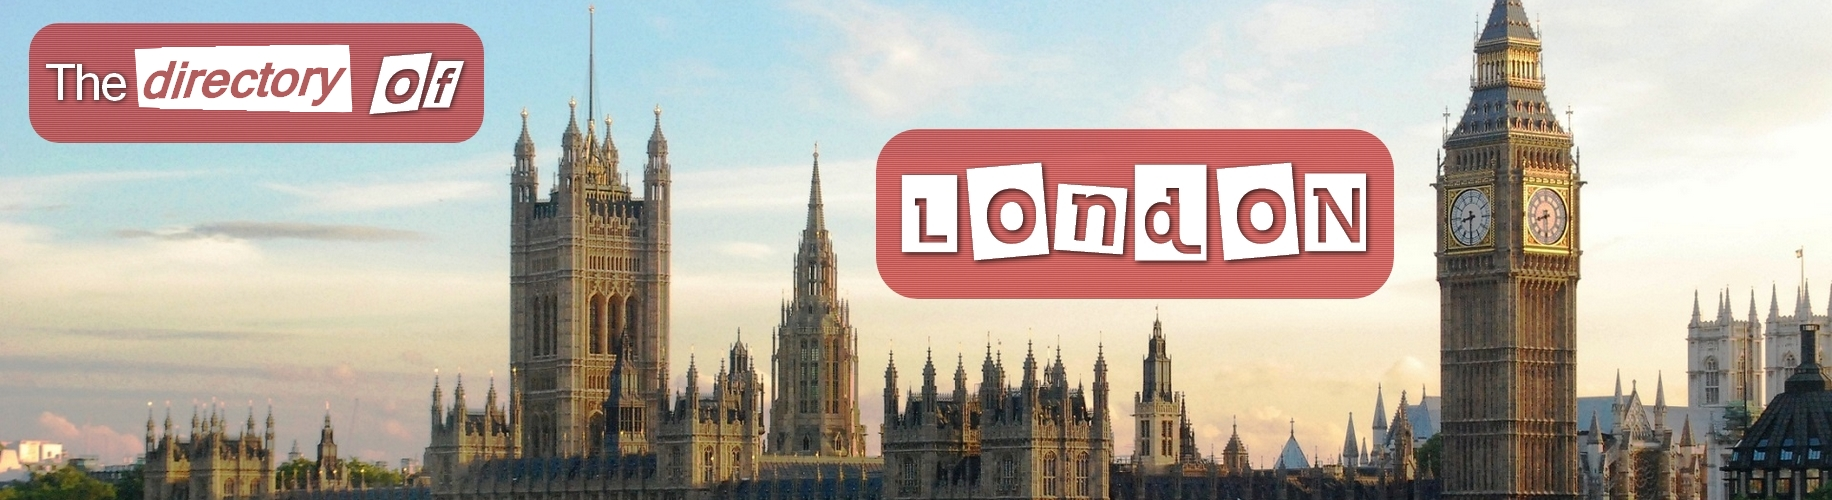 The Urban Planning Directory of London